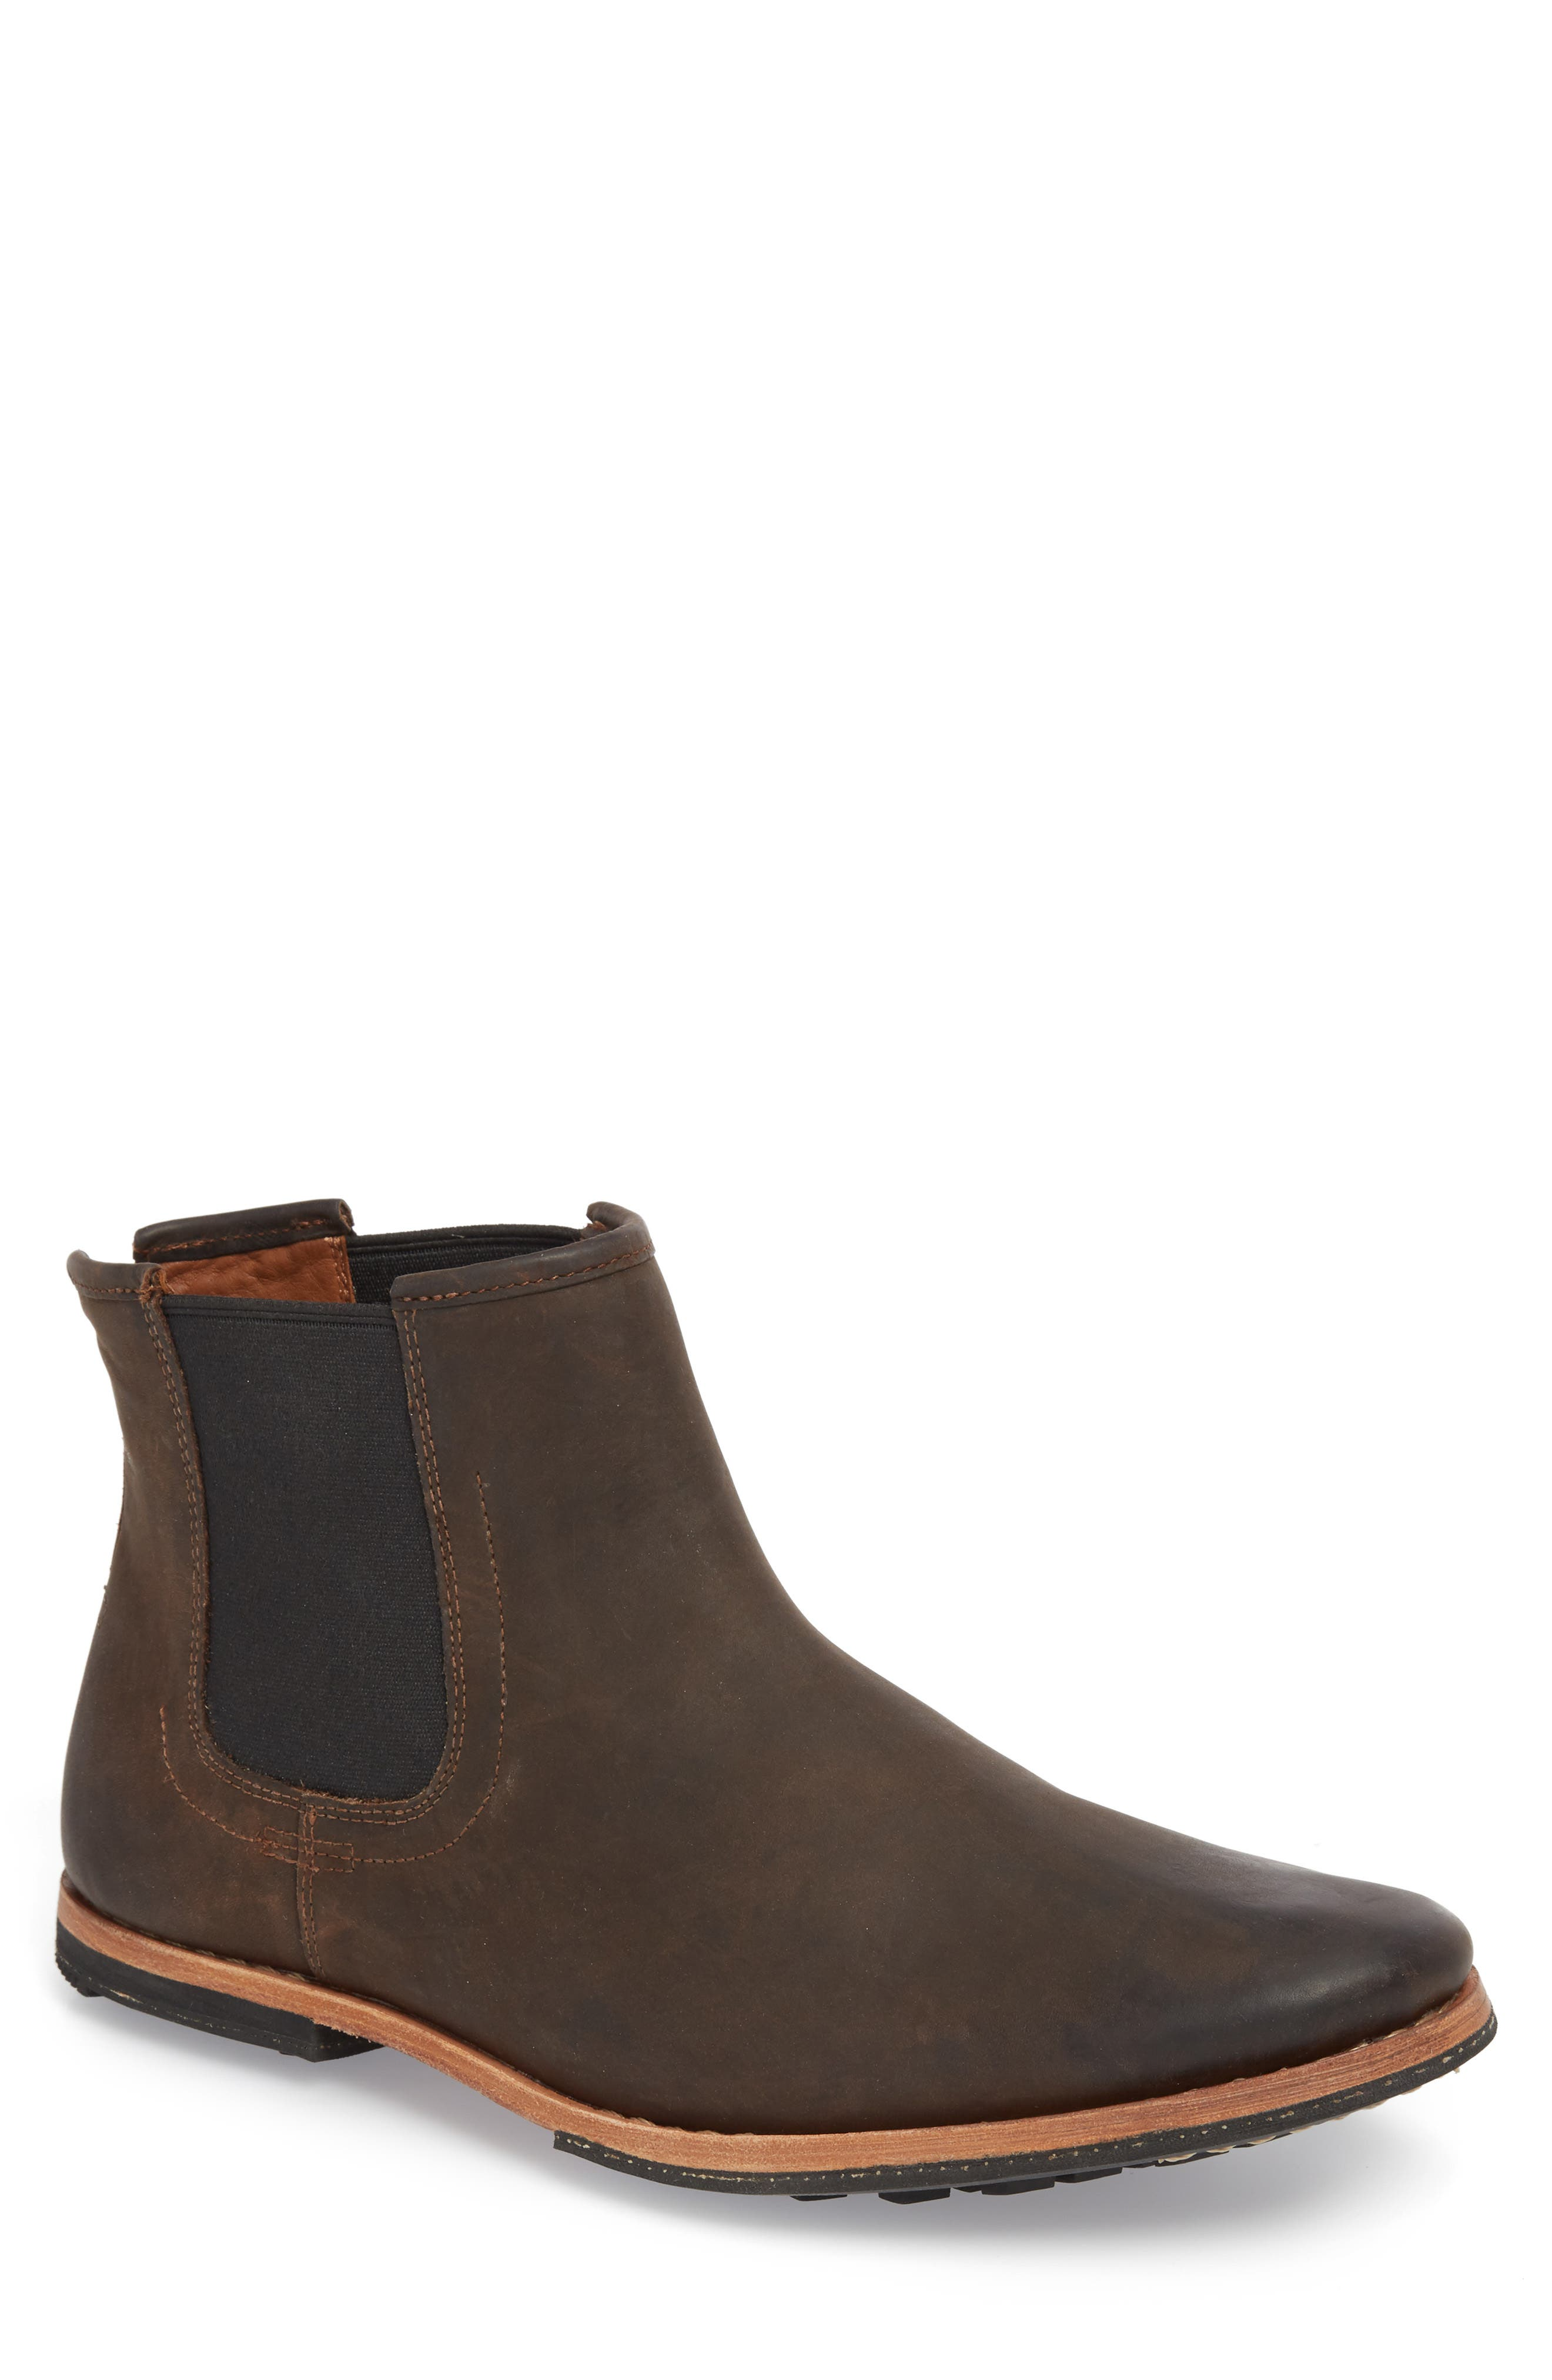 Wodehouse History Chelsea Boot,                         Main,                         color, BROWN LEATHER